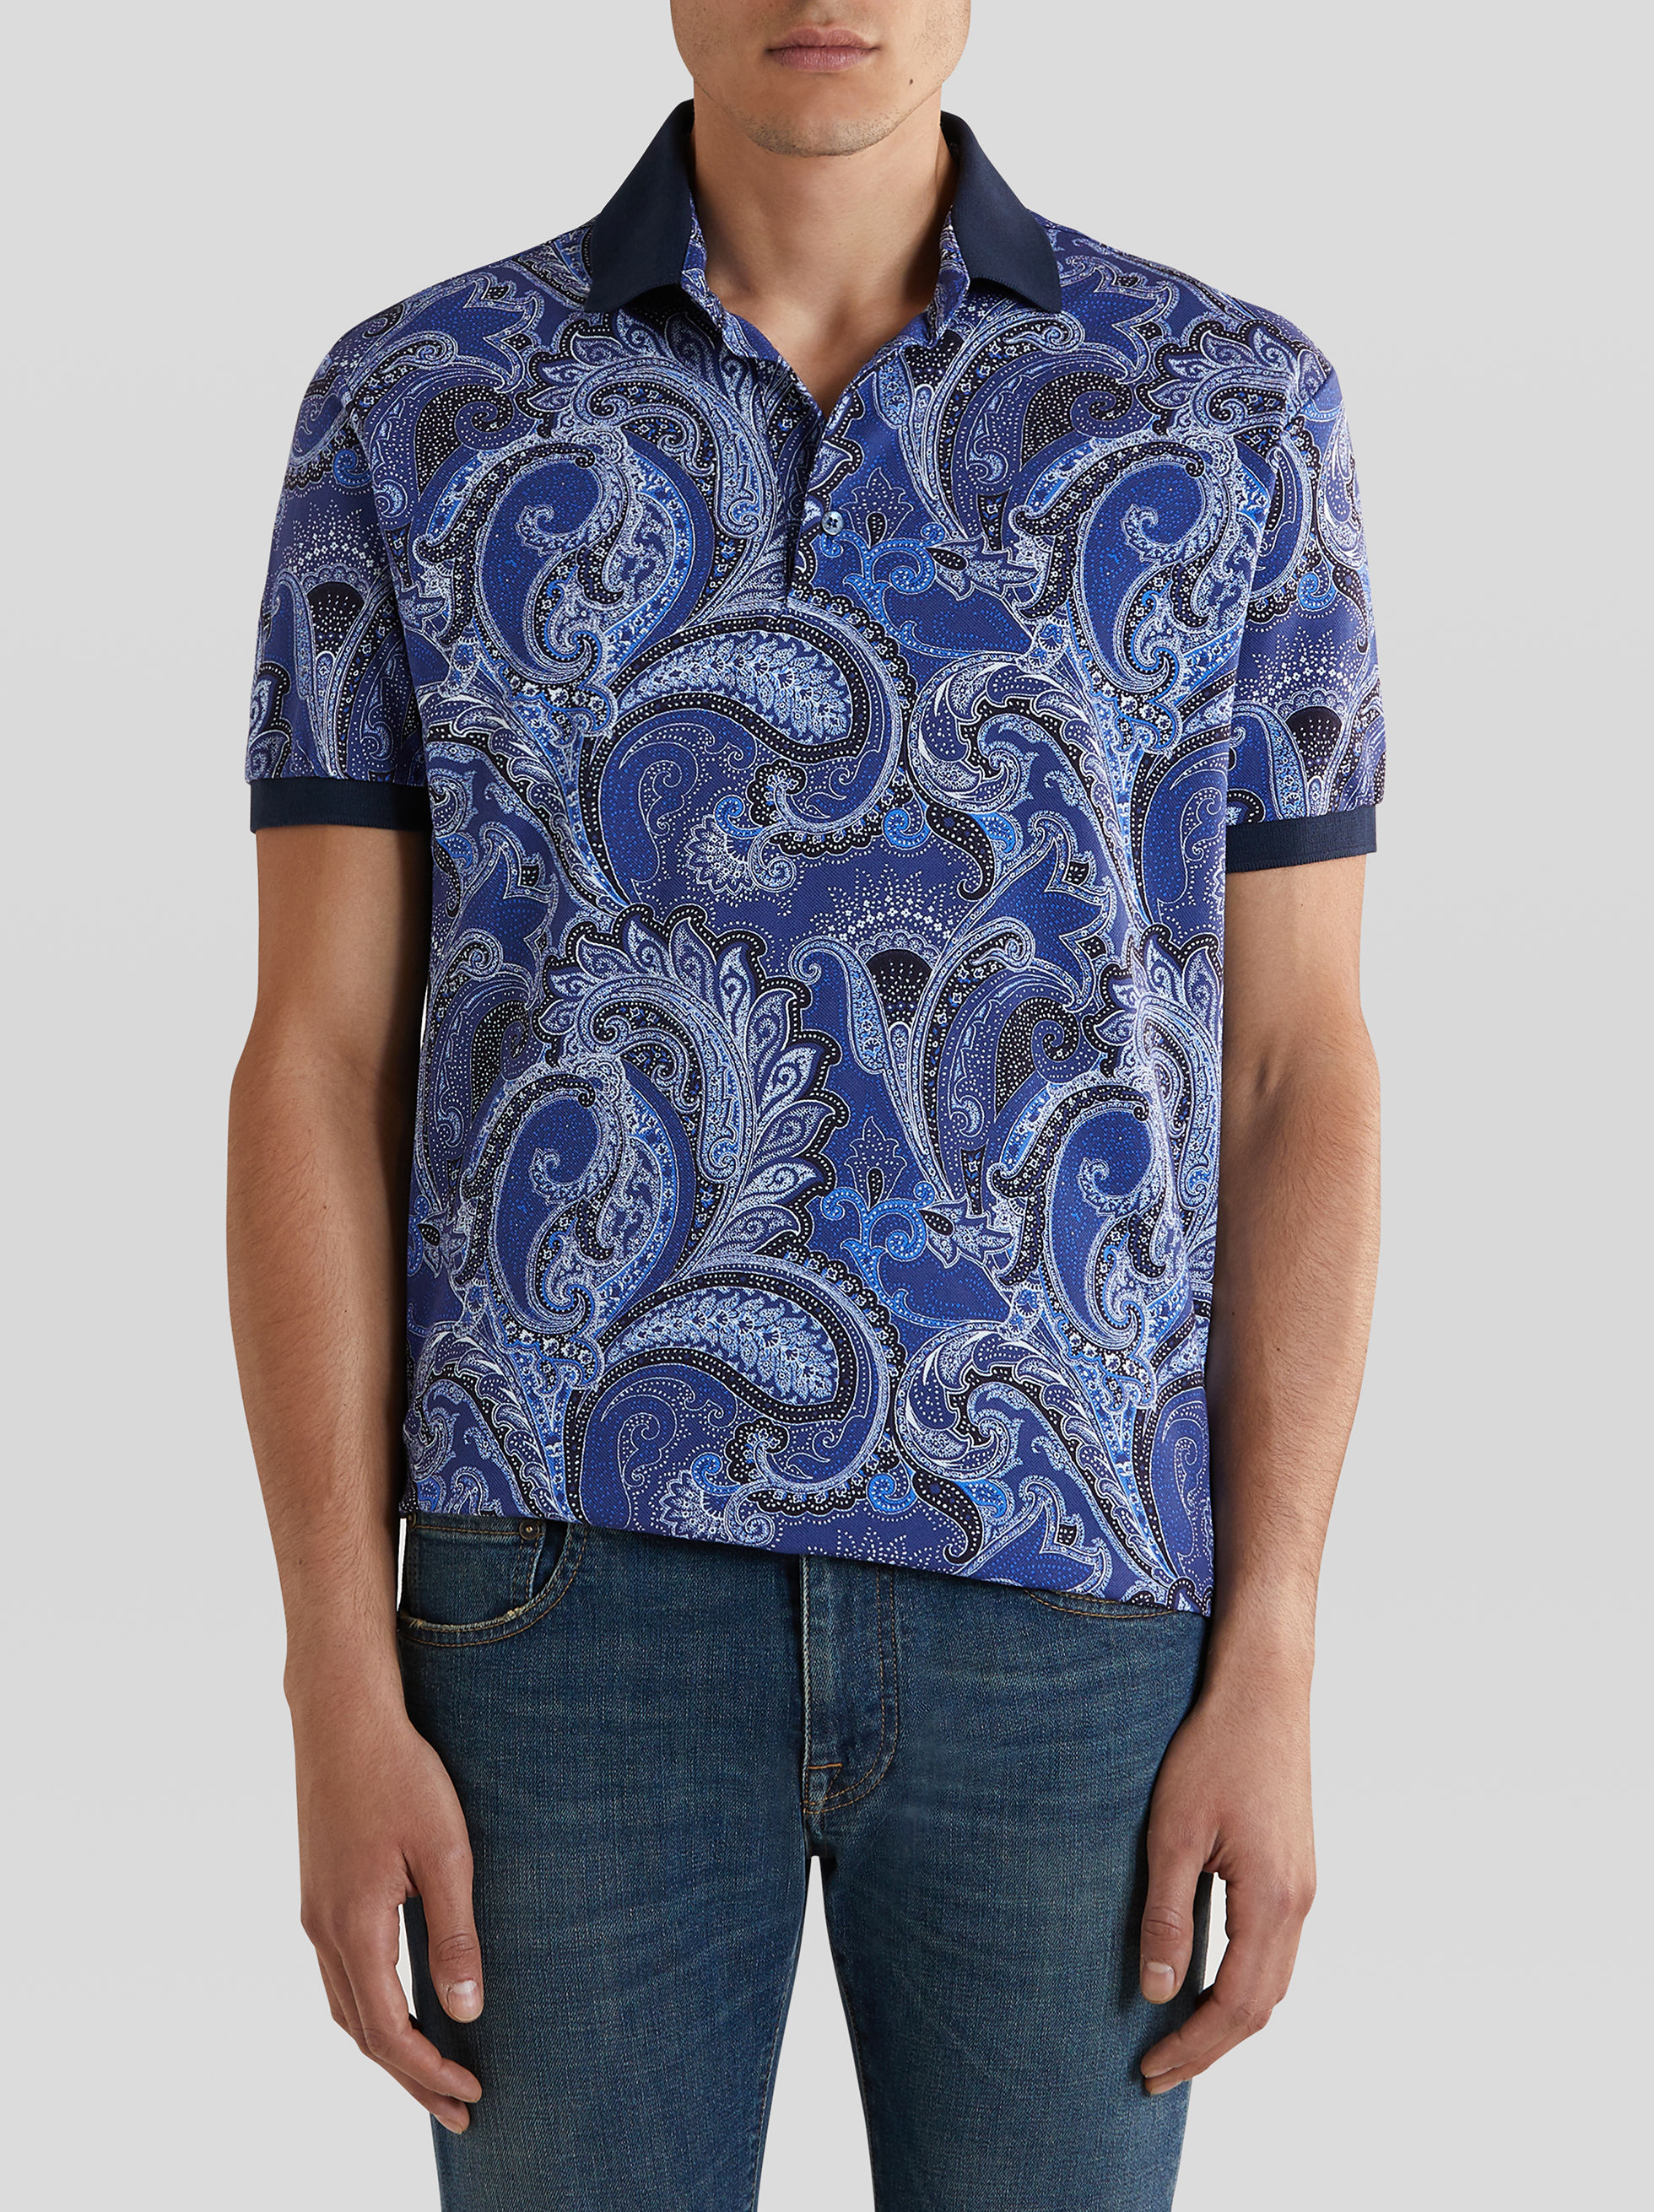 FLORAL PAISLEY PATTERN POLO SHIRT